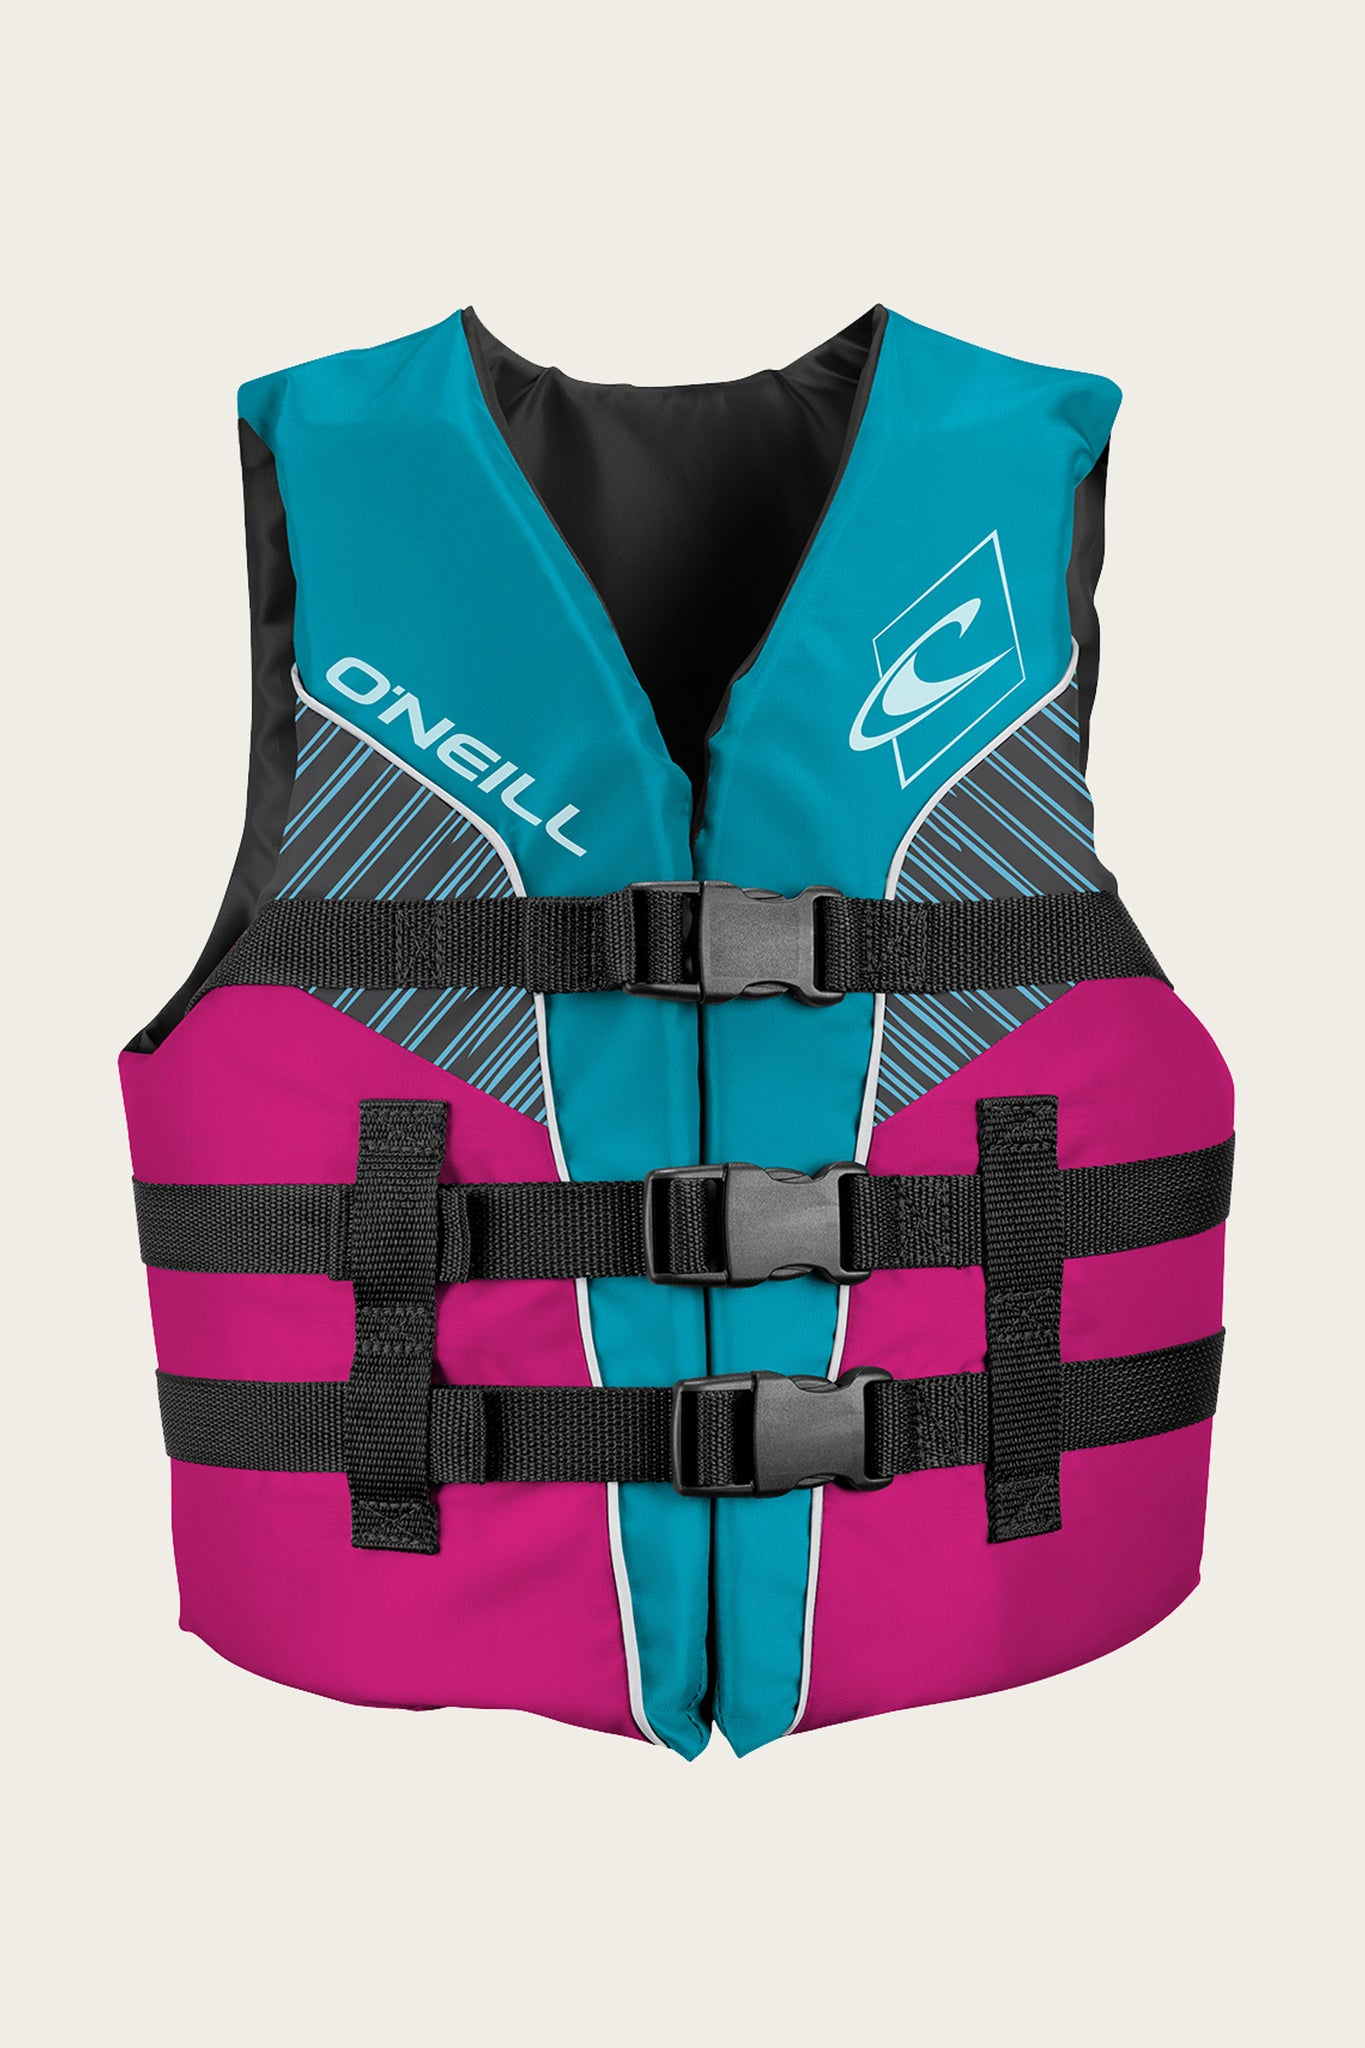 Youth Superlite Uscg Vest - Turq/Berry/Smoke:Wht | O'Neill